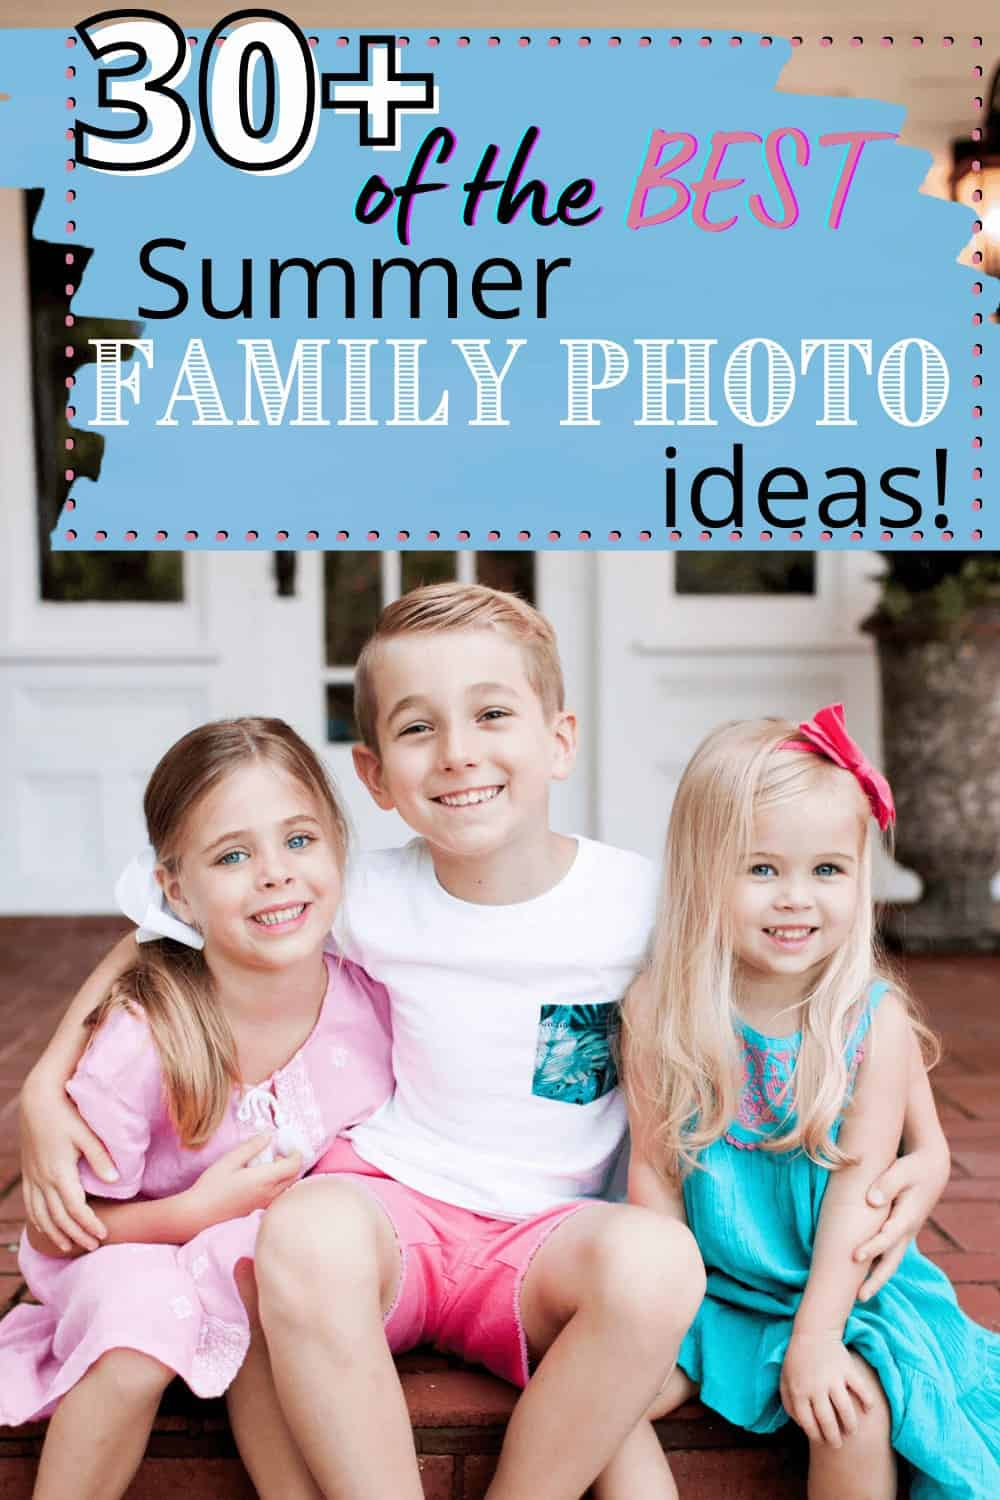 over 30 of the best summer family photo Ideas for moms including what to wear and much more!